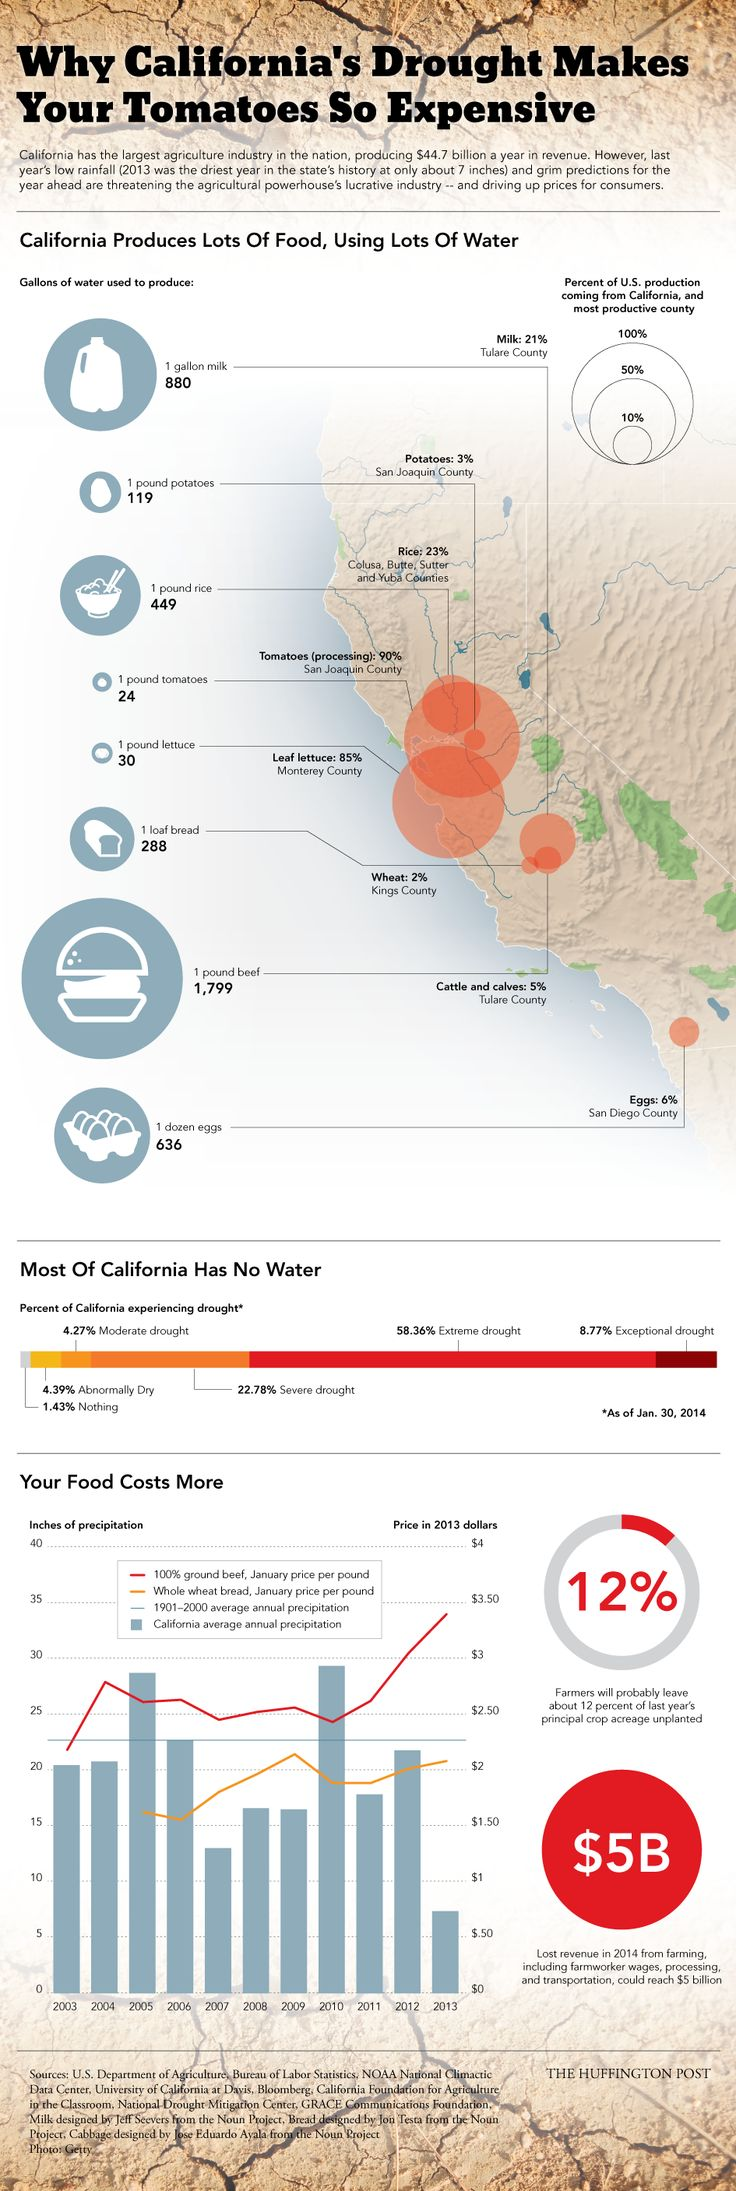 California had record low rainfall in 2013. It was potentially the driest year in the last 500 years, according to tree rings, and dry weather is expected to last through 2014. The state's $44.7 billion agriculture industry may take a significant hit, and prices for foods that are water-intensive to produce -- such as beef, milk, and tomatoes -- might start reflecting California's water woes.